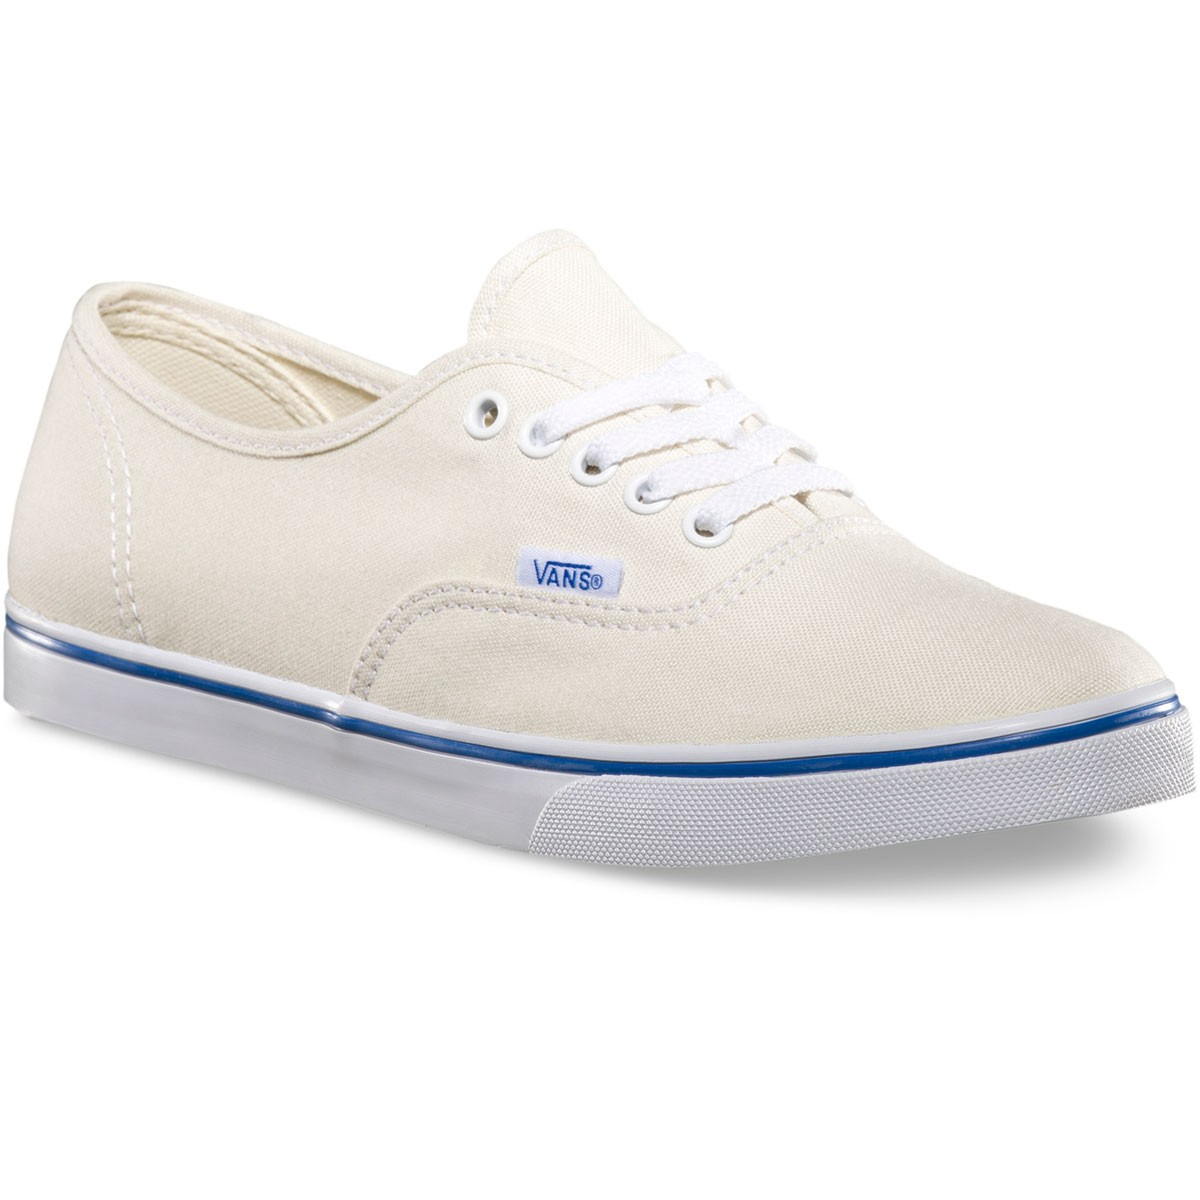 4f6d702be8417a Vans Authentic Lo Pro Womens Shoes - White True White - 4.0